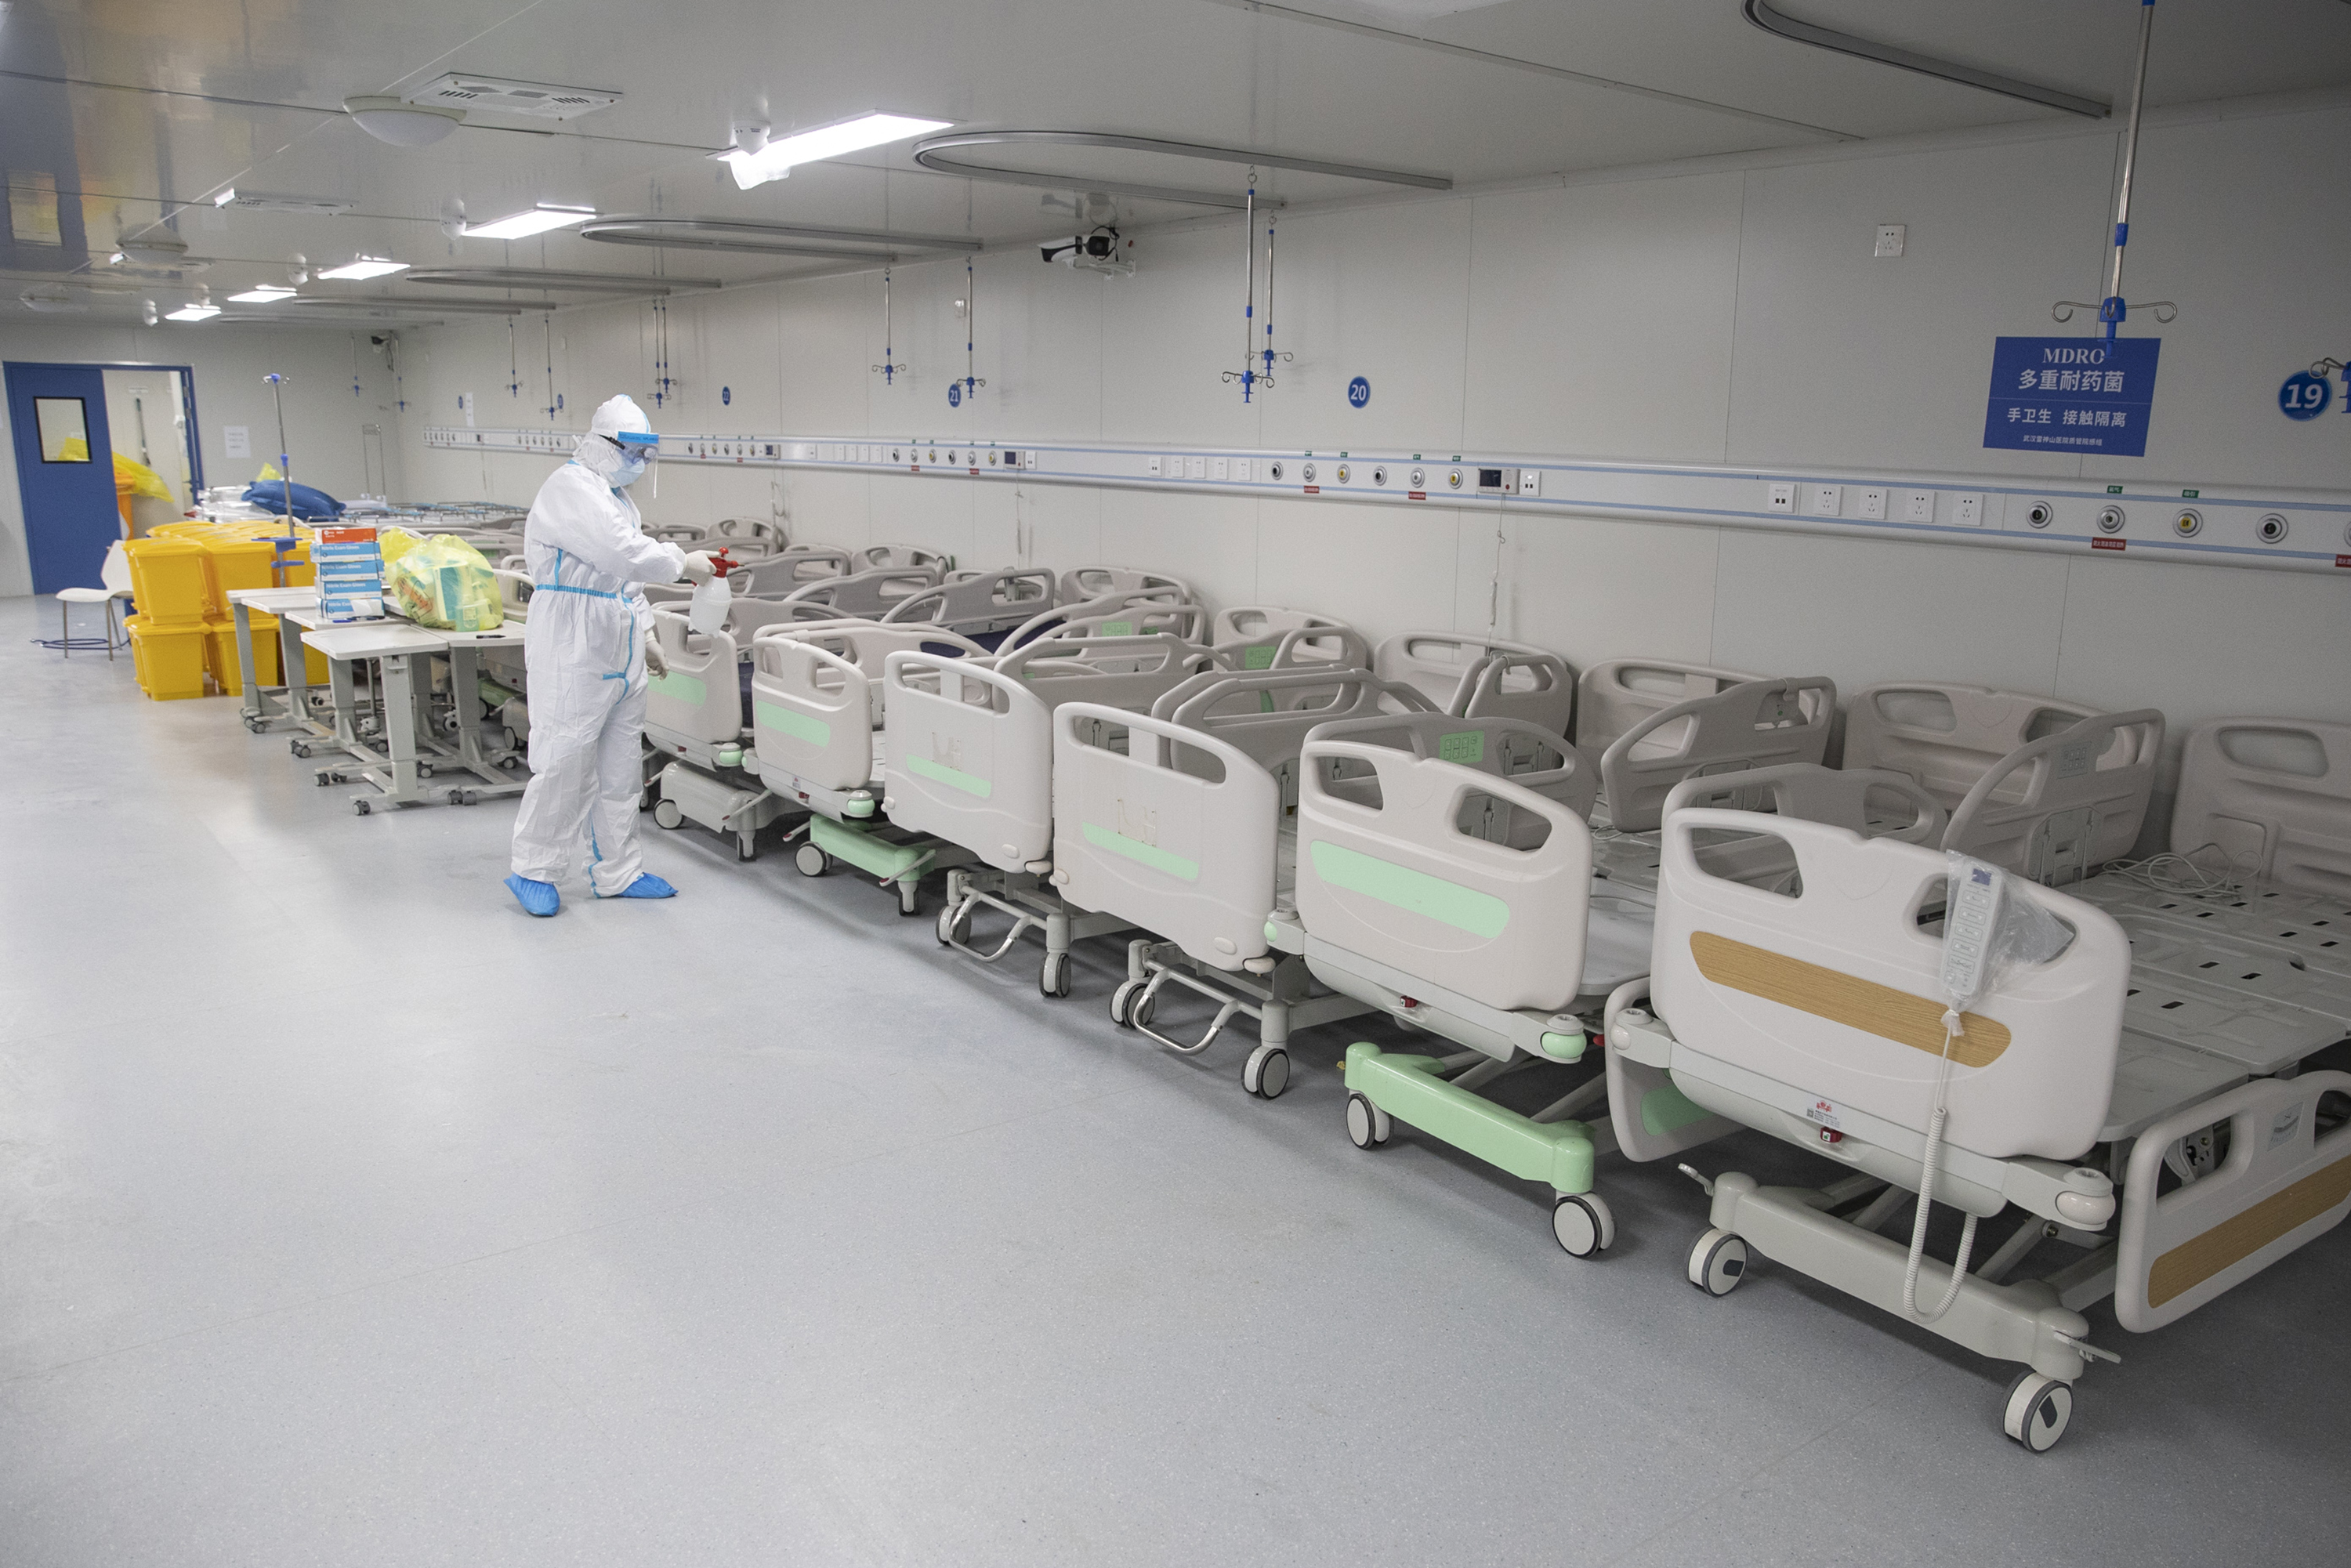 A staff member sprays disinfectant on empty beds after all patients left Leishenshan Hospital in Wuhan in China's central Hubei province. The hospital, built in less than two weeks to handle a large number of Covid-19 patients closed on April 14.